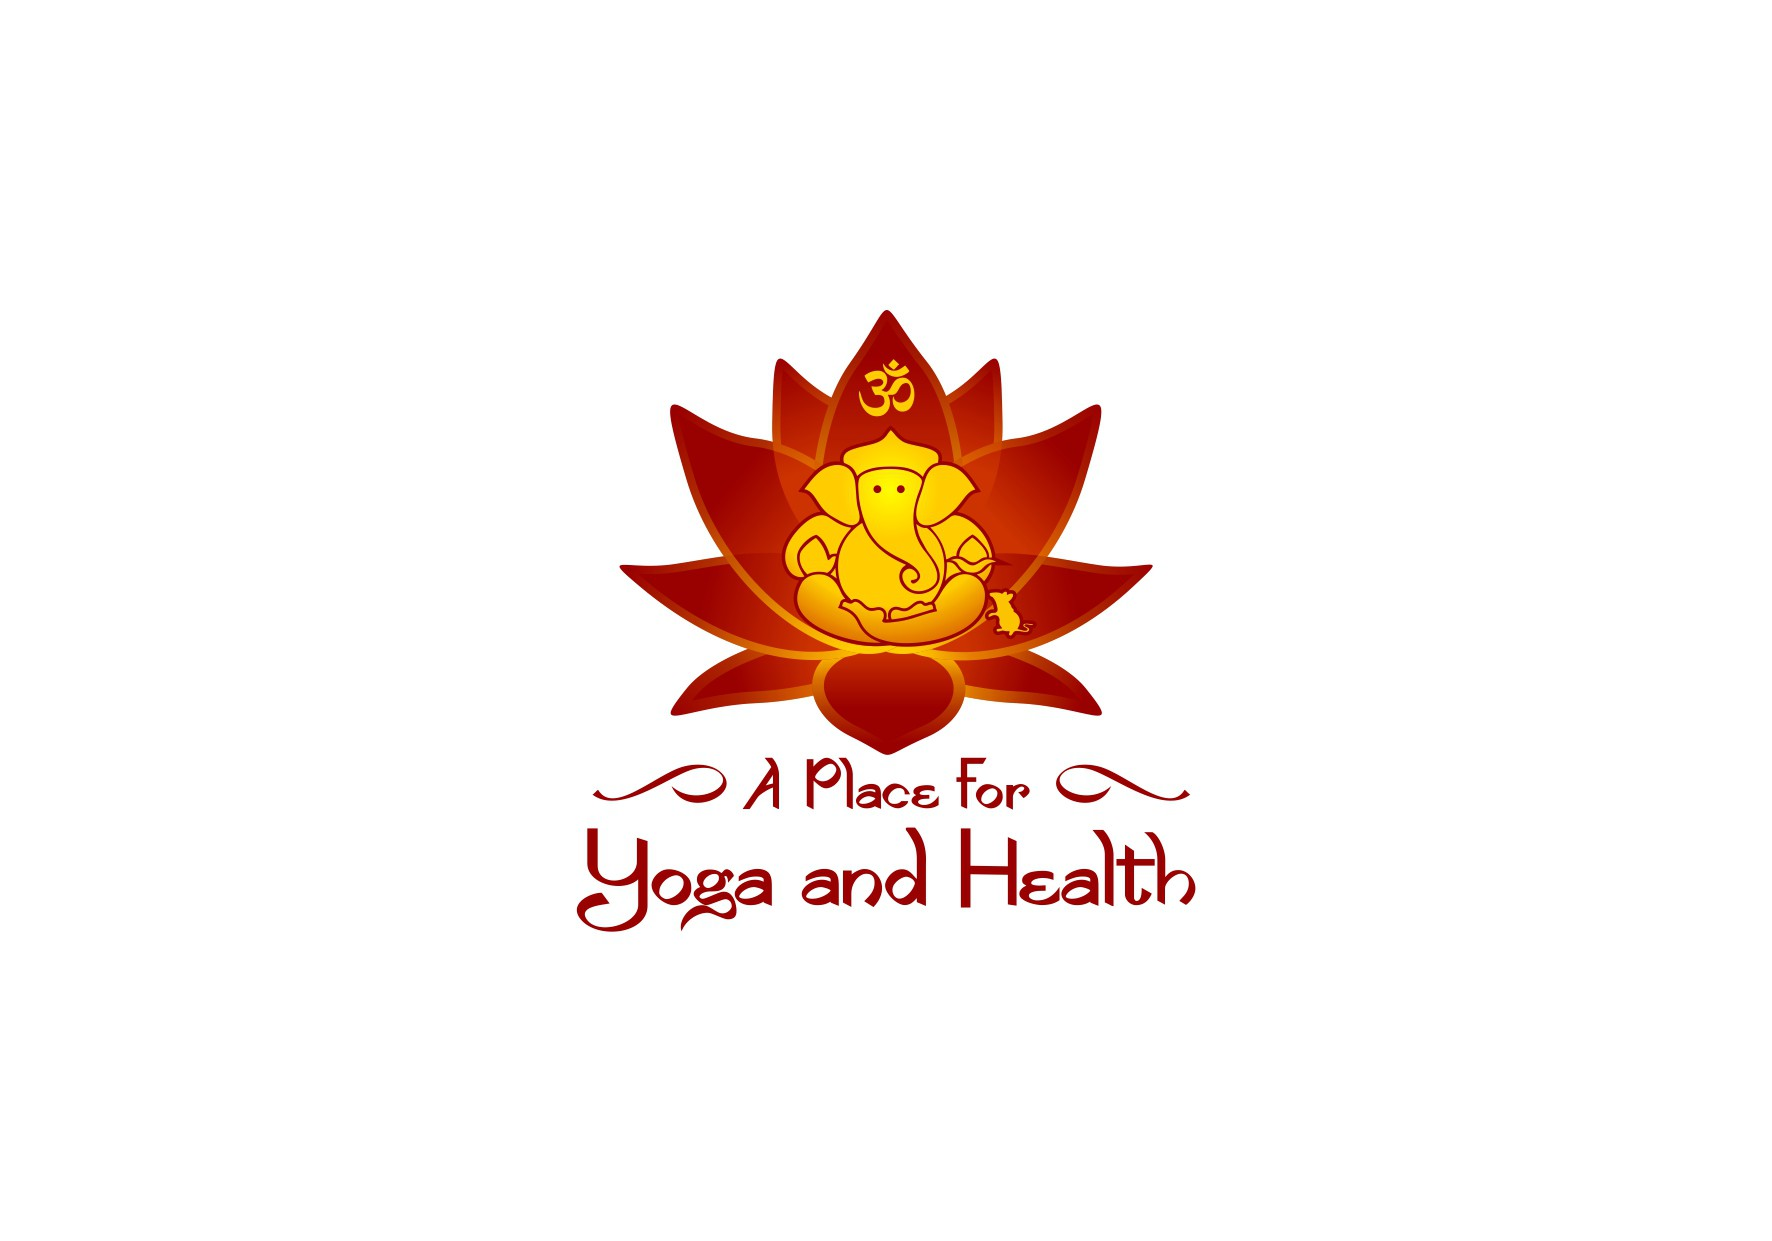 New logo wanted for A Place For Yoga and Health